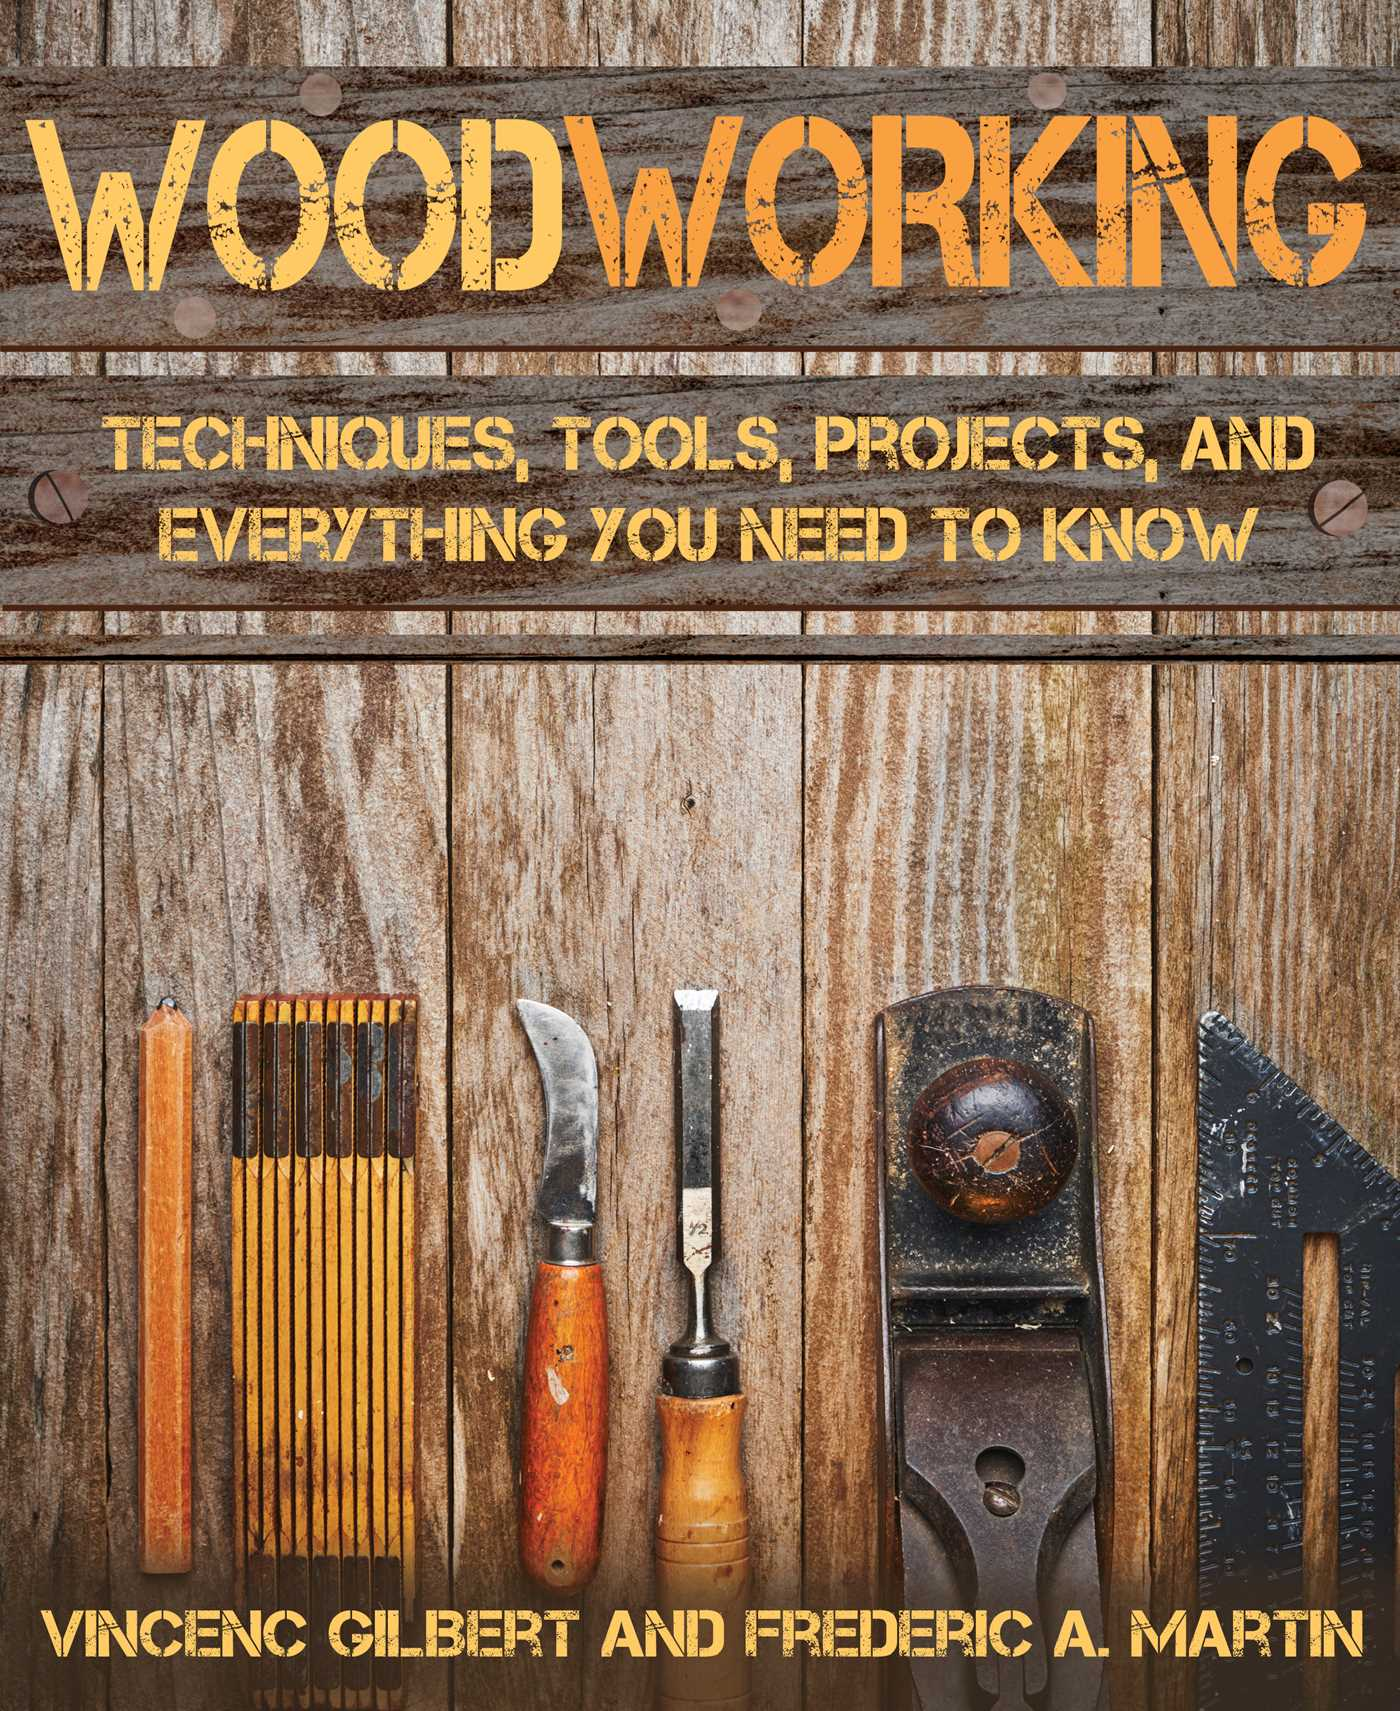 Woodworking Book By Vicenc Gilbert Frederic A Martin